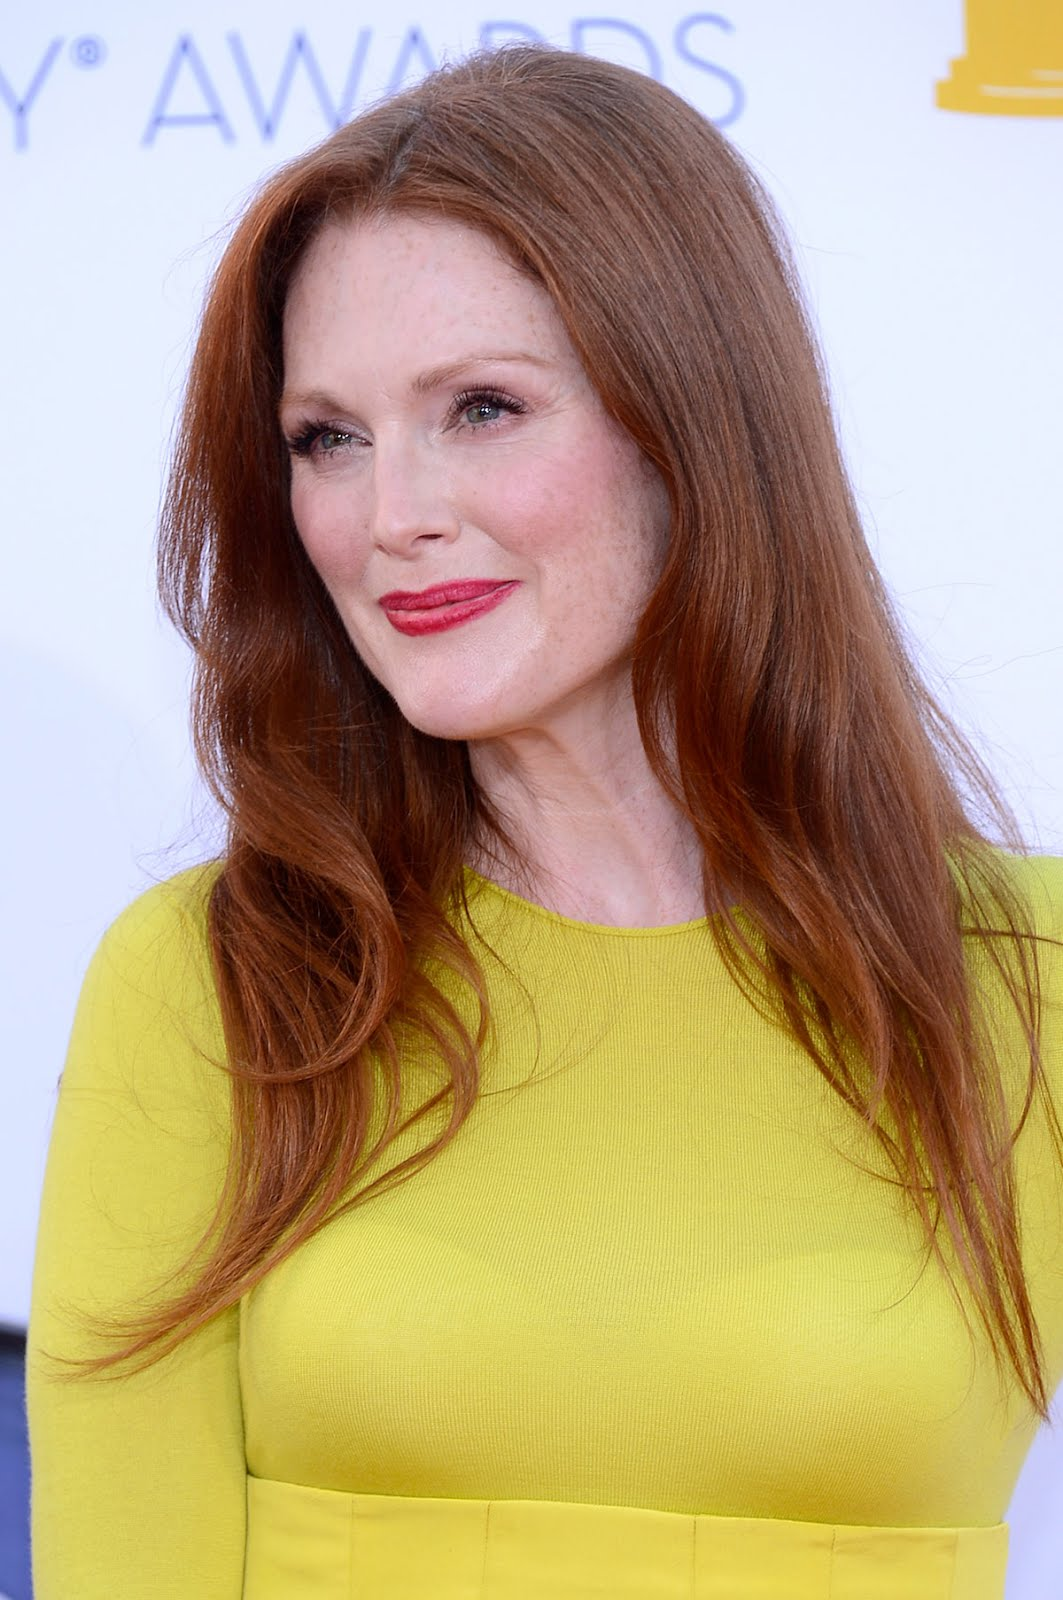 http://2.bp.blogspot.com/-NUpAa-oGkeo/UGLgle6Mv-I/AAAAAAAAB6E/Fj-cupTek_Y/s1600/JULIANNE-MOORE-at-64th-Primetime-Emmy-Awards-in-Los-Angeles-2.jpg